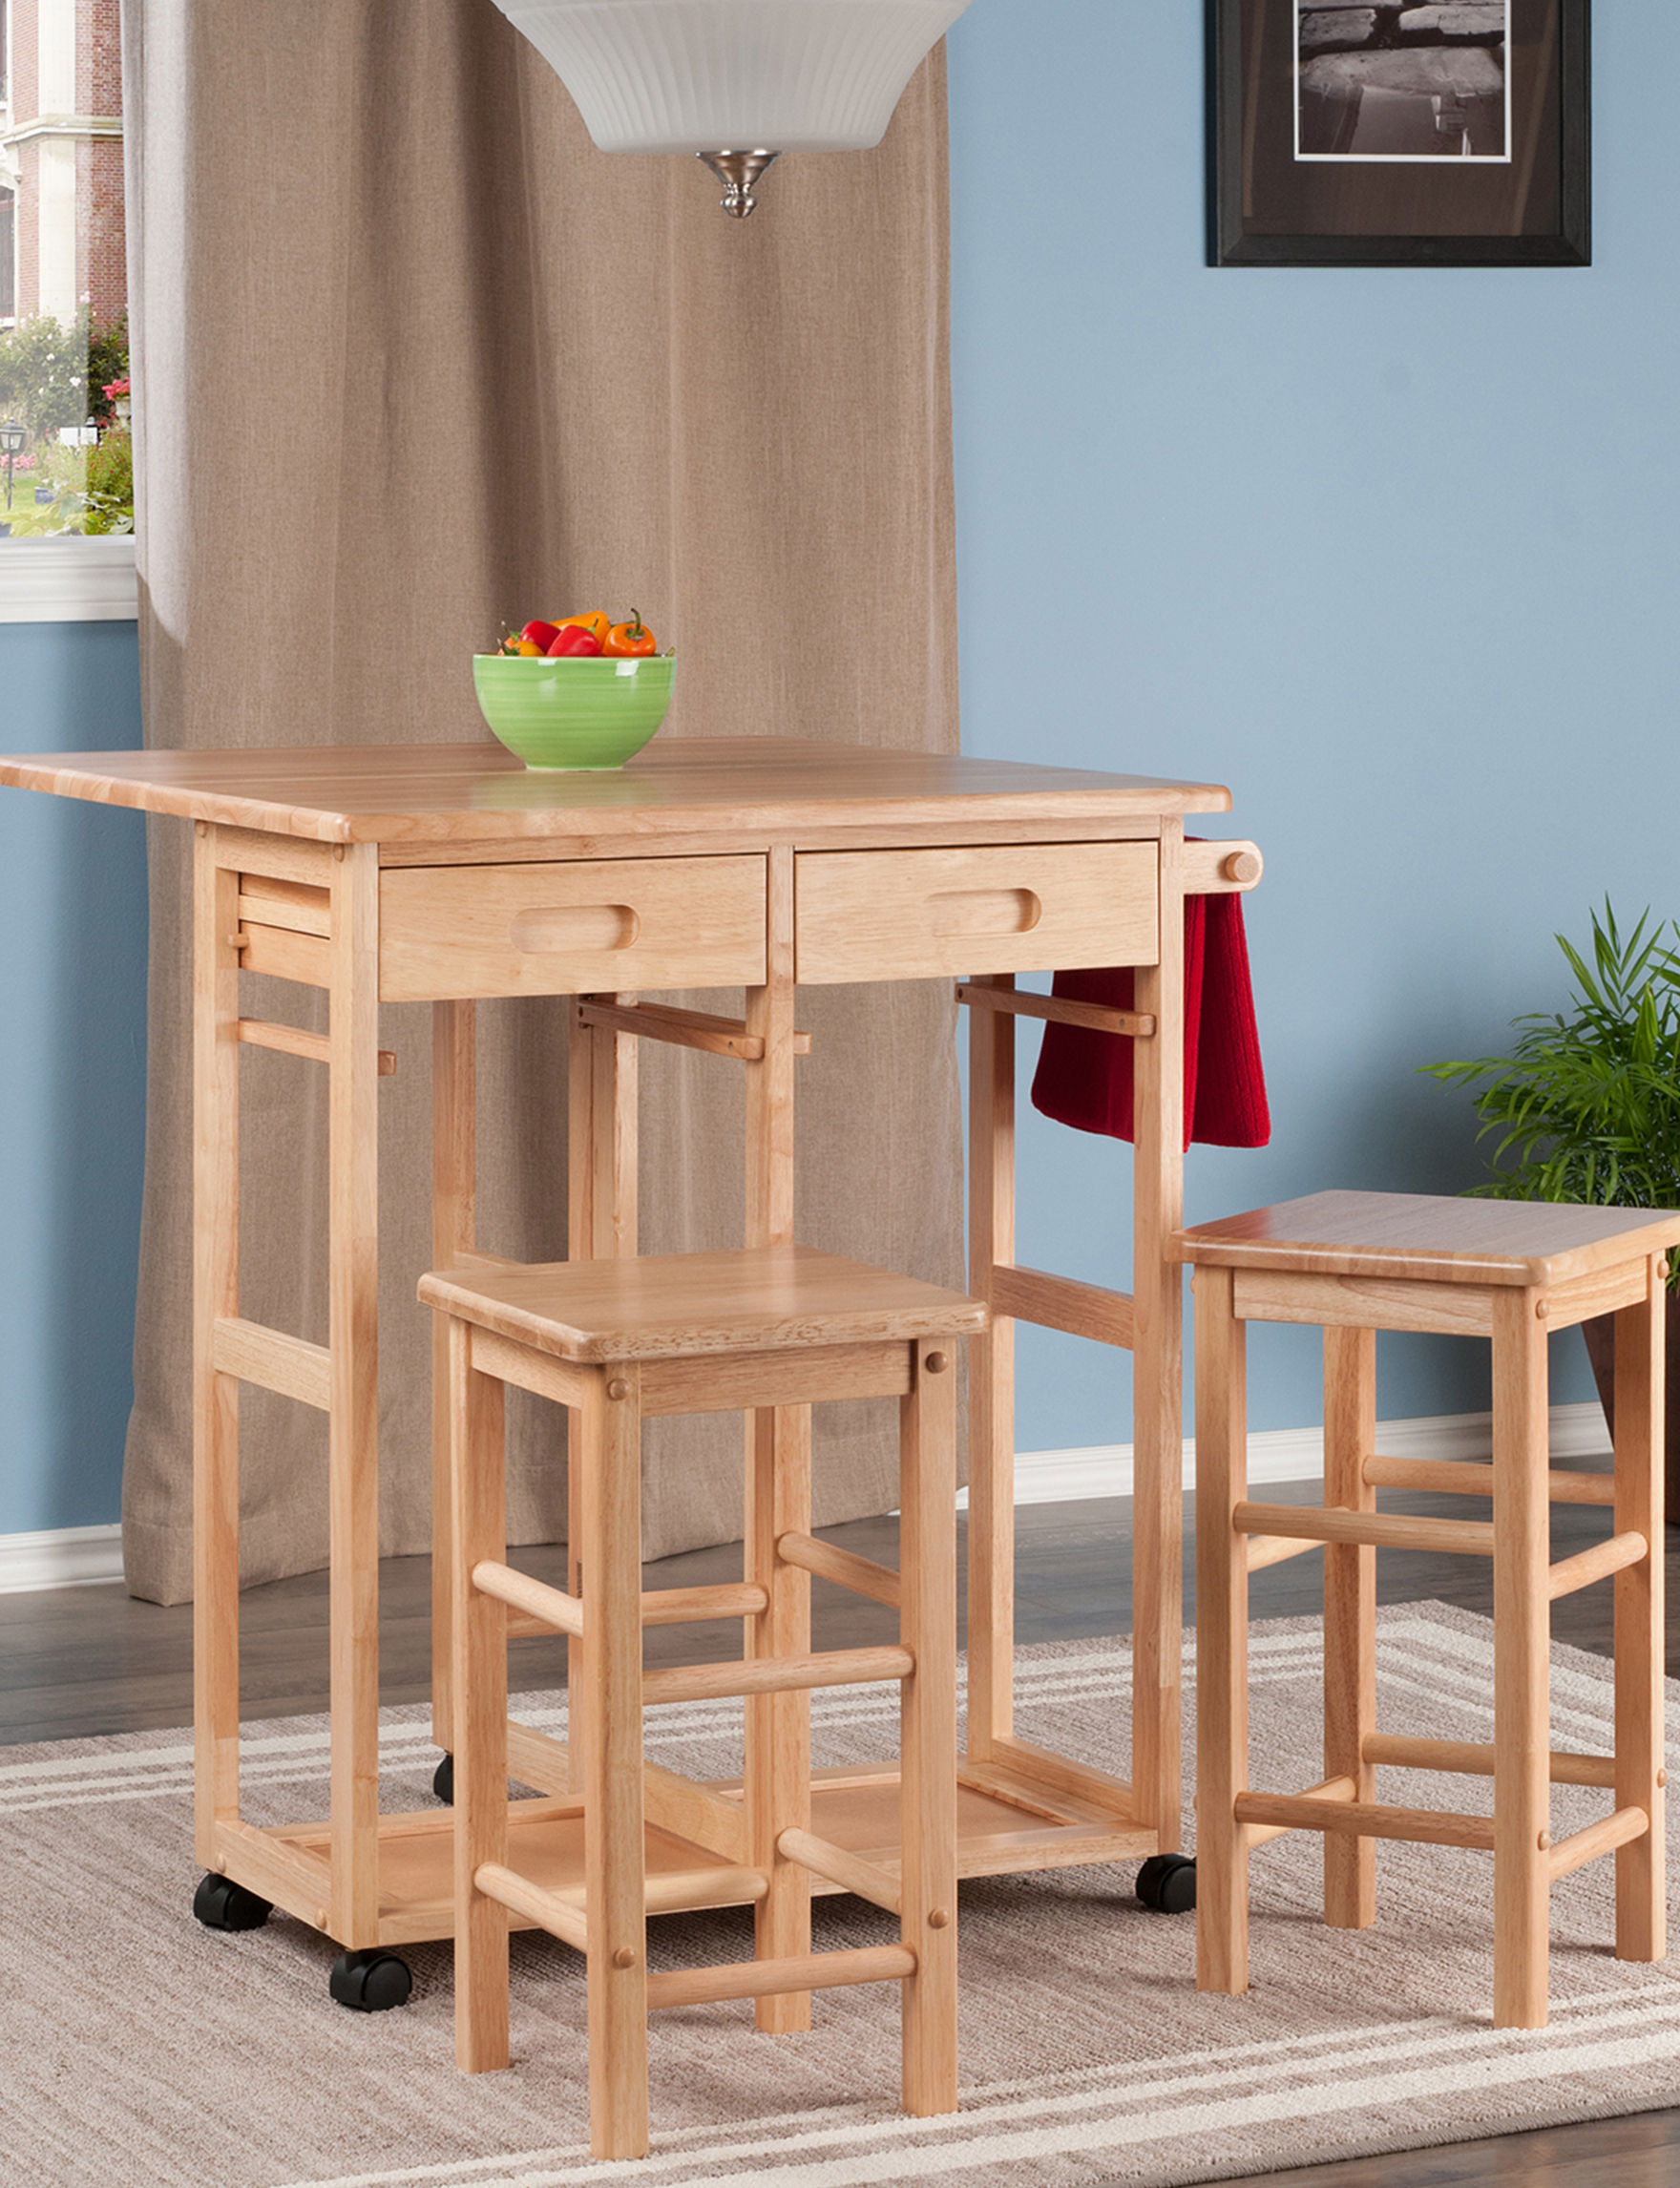 Winsome khaki Dining Room Sets Kitchen & Dining Furniture